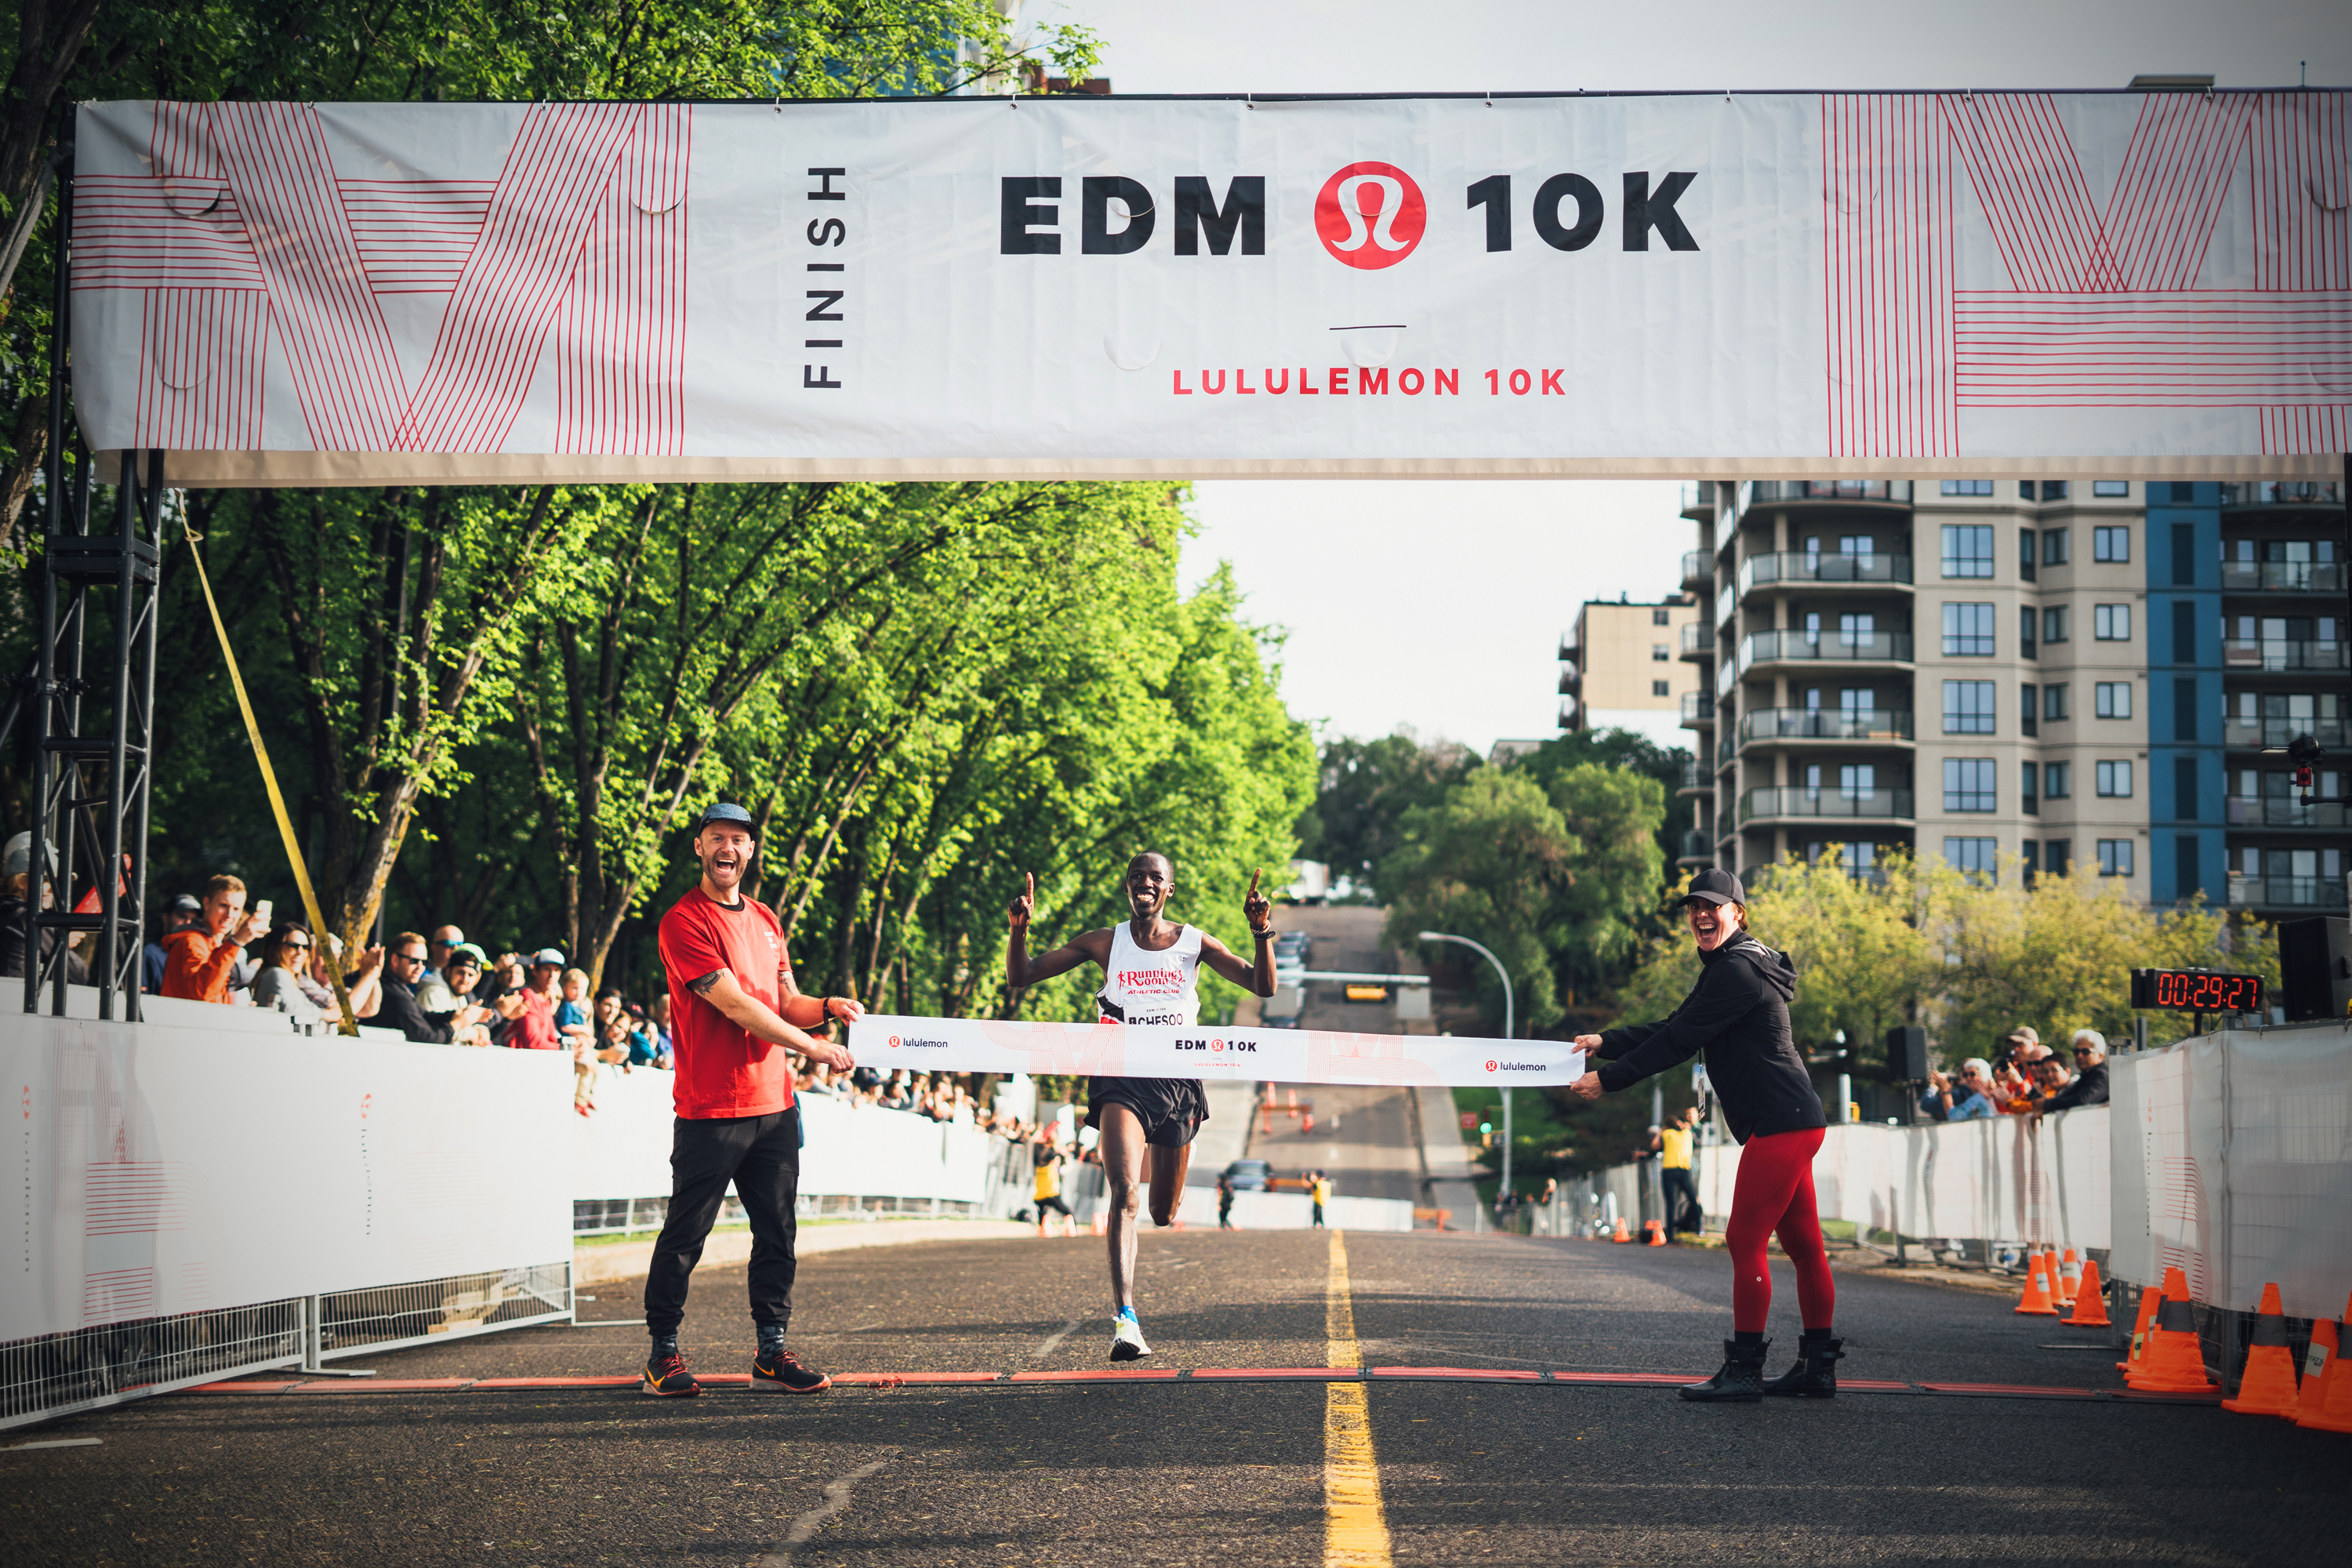 Chesoo crosses the finish line at the Lululemon Edmonton 10K with ease. (Des Iles/Canada Running Series)